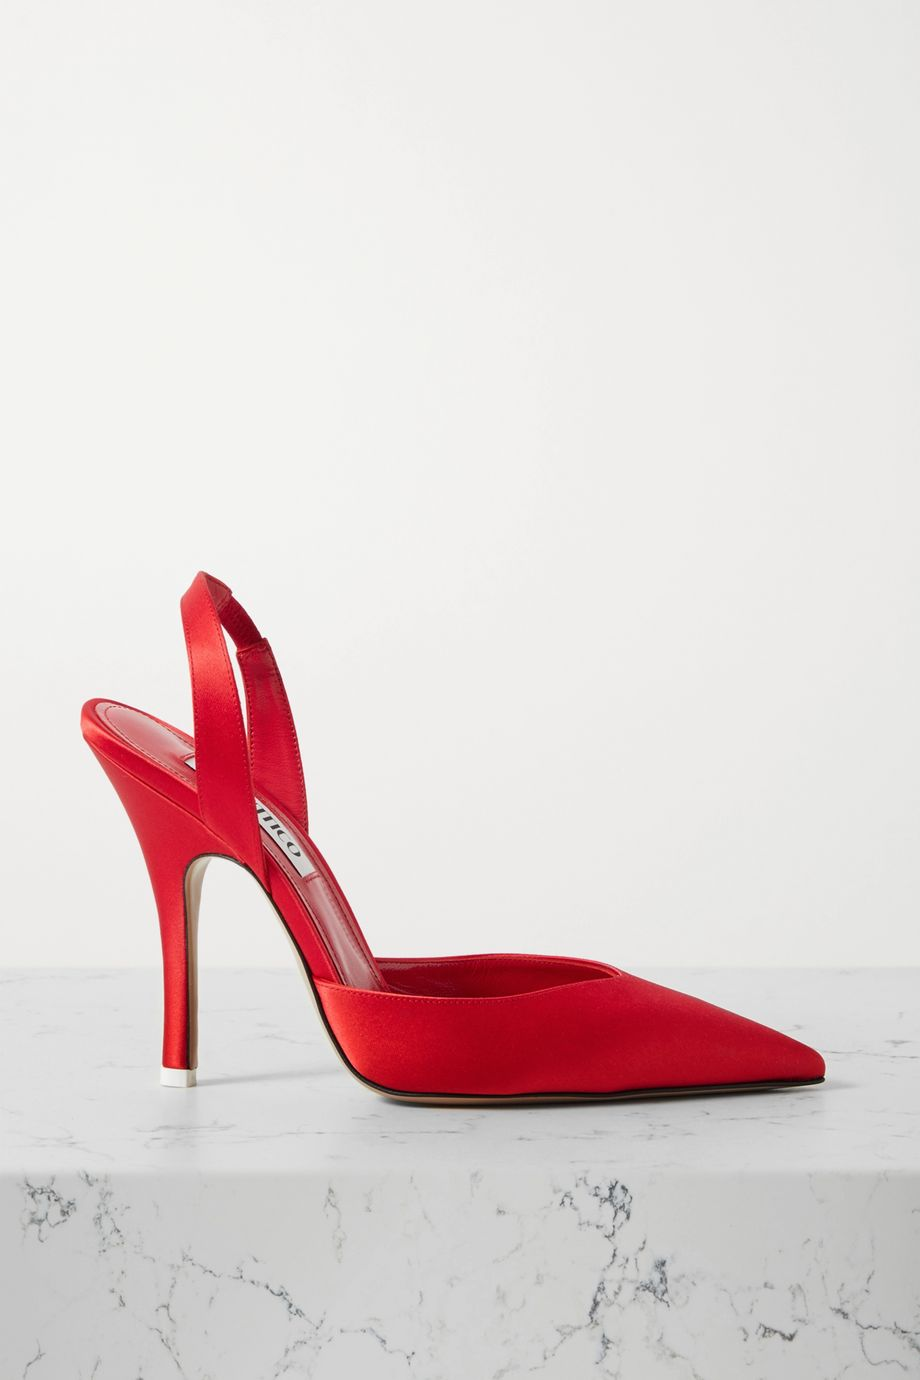 The Attico Lola slingback satin pumps